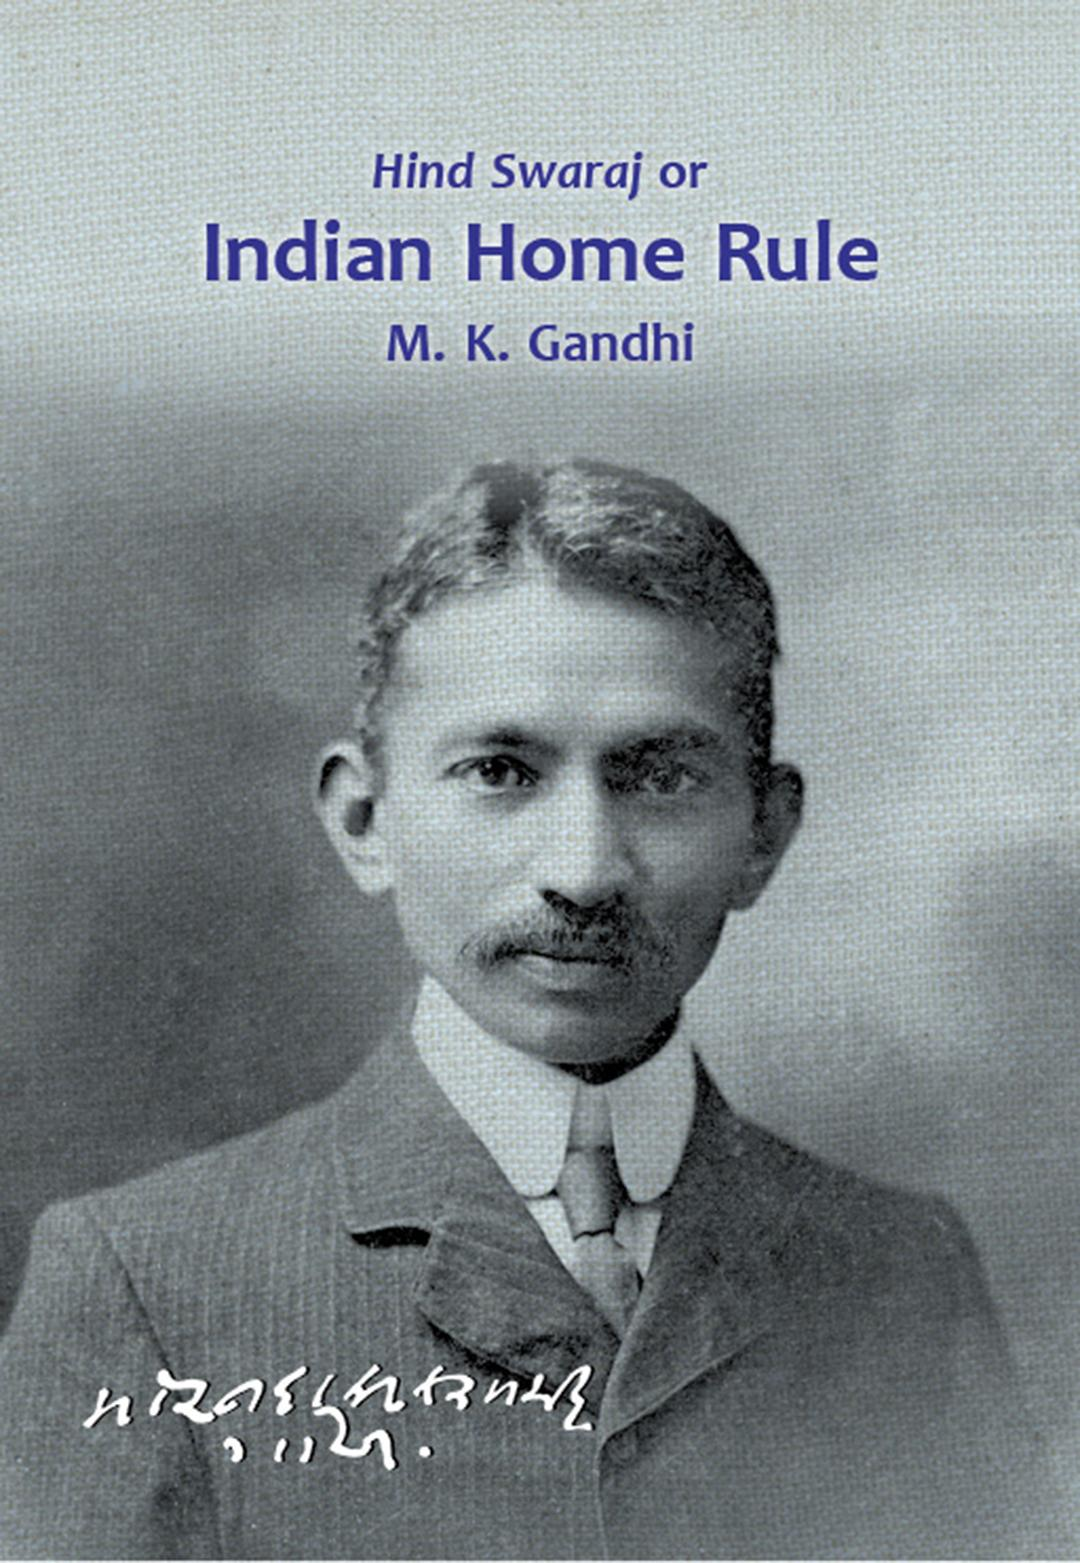 essay on indian home rule by gandhi